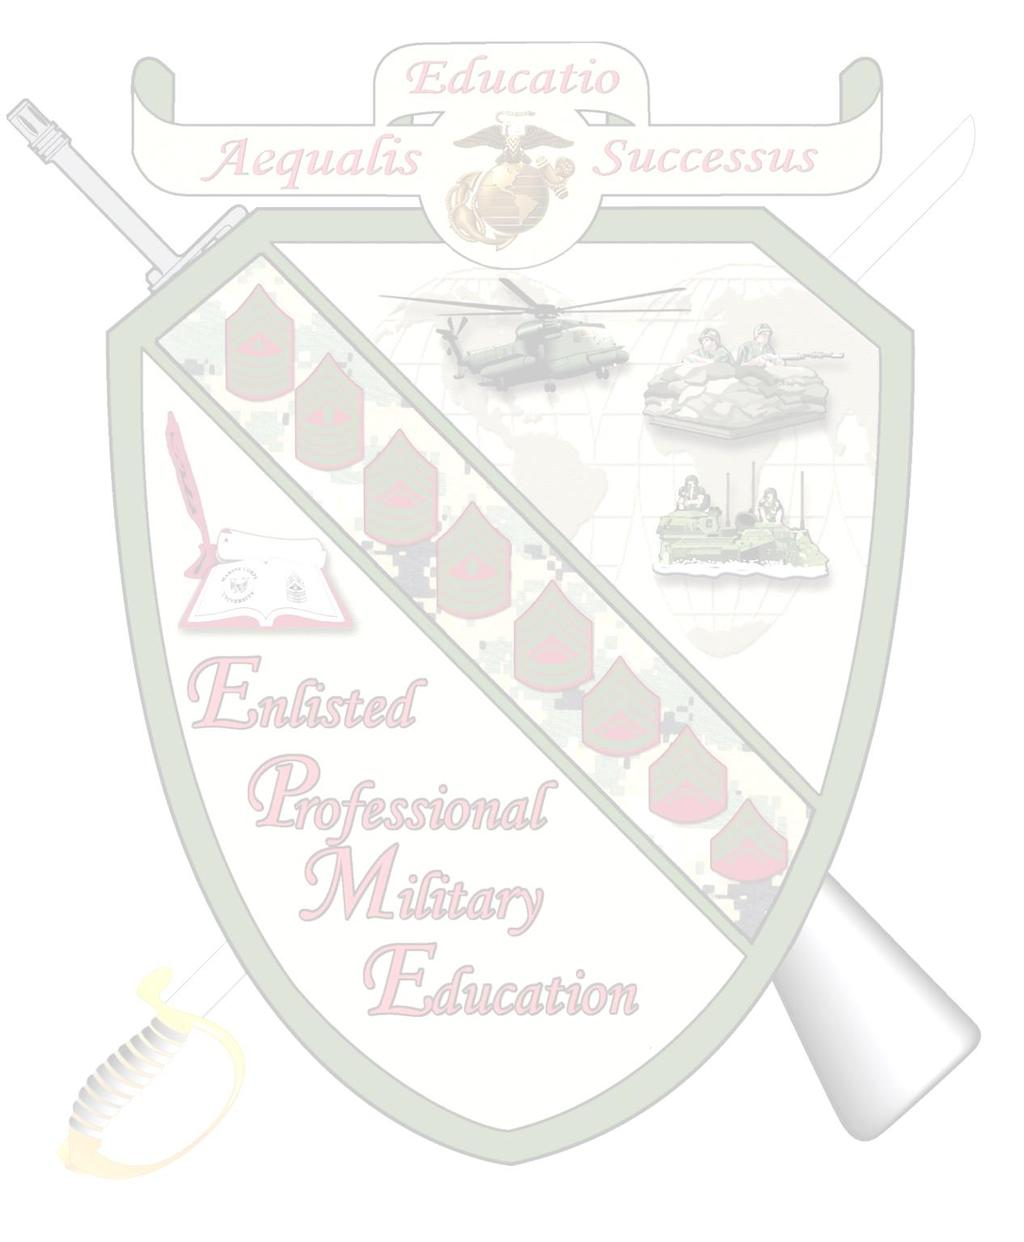 Enlisted Professional Military Education FY 18 Academic Calendar Table of Contents STAFF NON-COMMISSIONED OFFICER ACADEMIES: SNCO Academy Quantico SNCO Academy Camp Pendleton SNCO Academy Camp